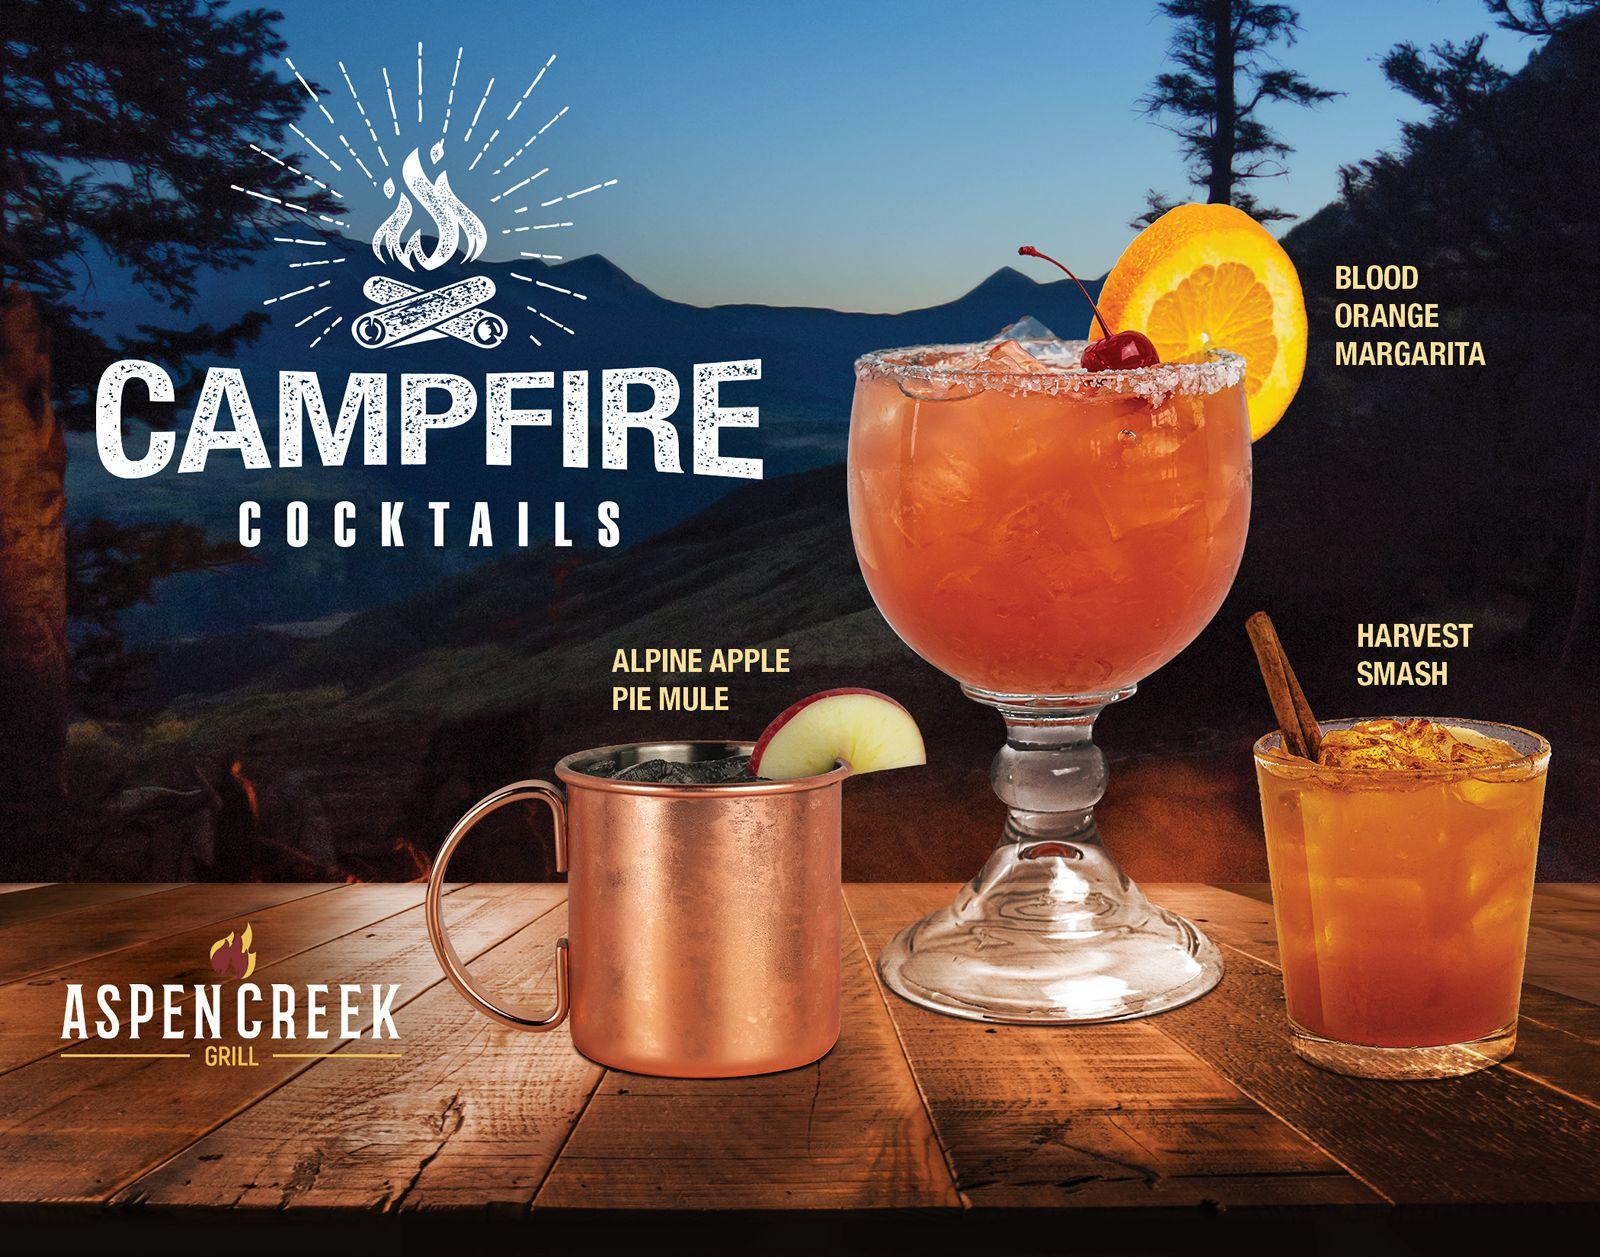 Is Aspen Creek Grill Open Christmas Day 2020 Aspen Creek Grill Introduces New Fall Fresh Campfire Cocktails